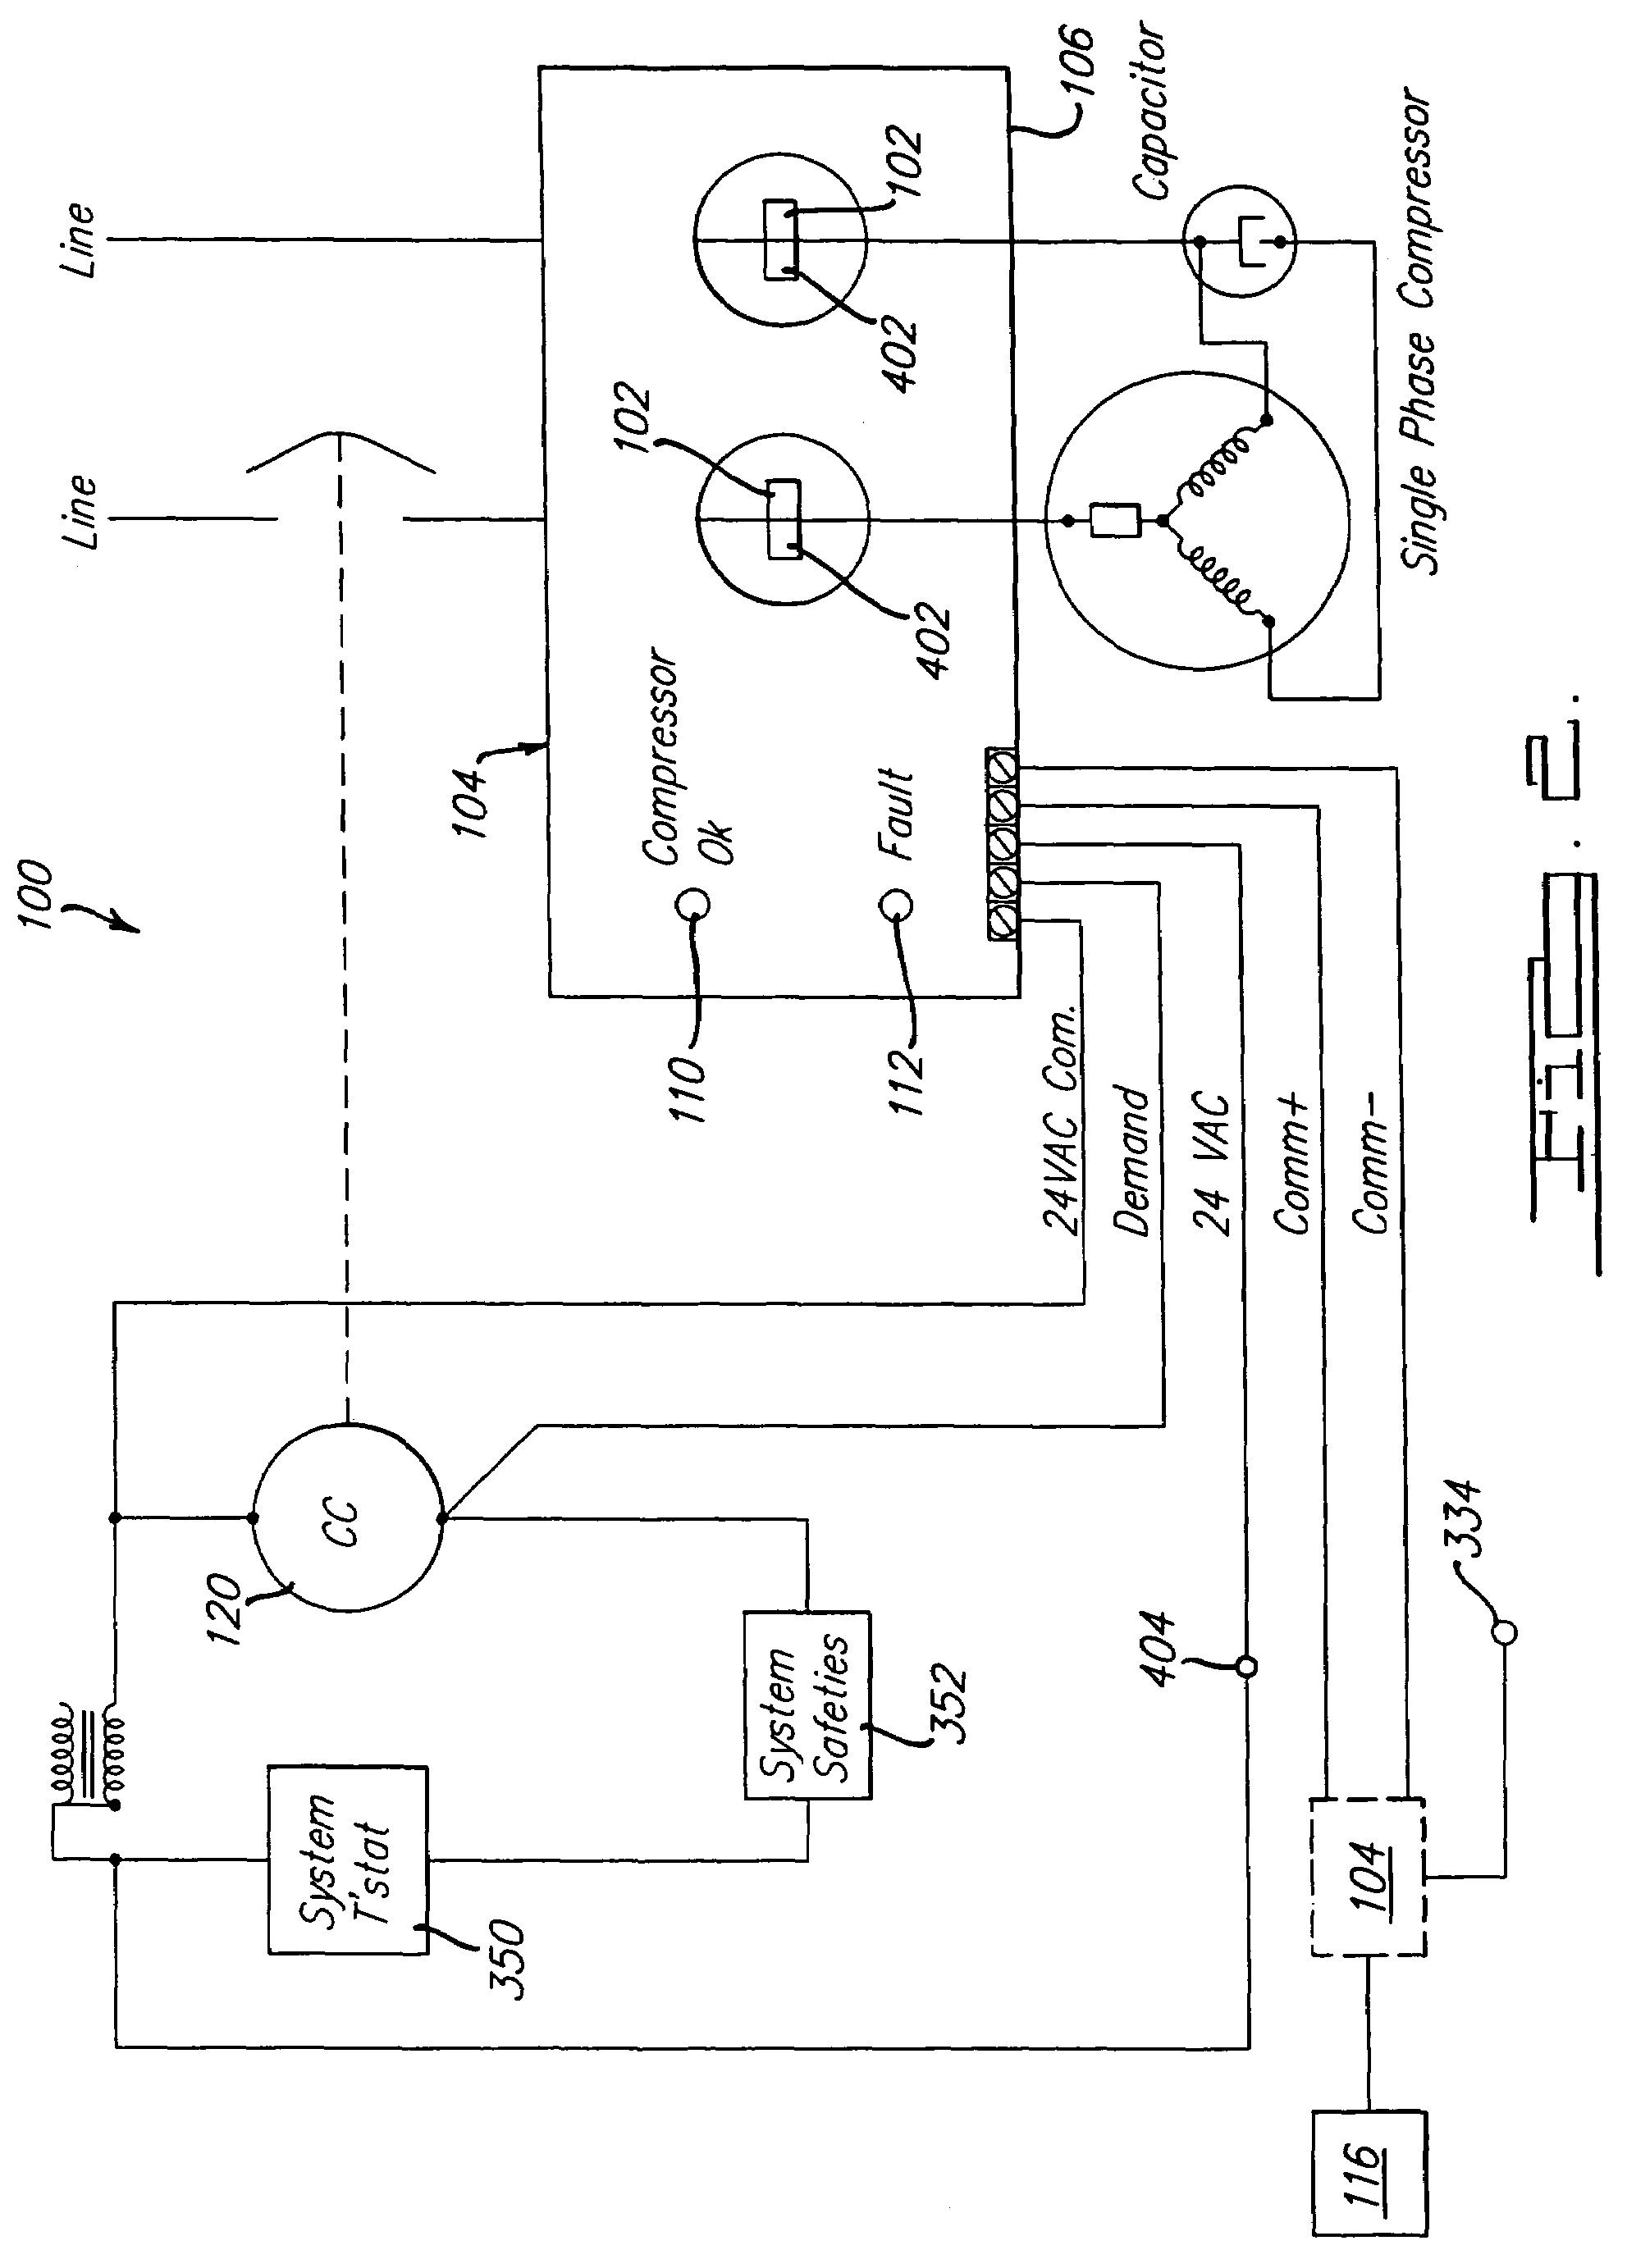 Massimo Oil Wiring Diagram